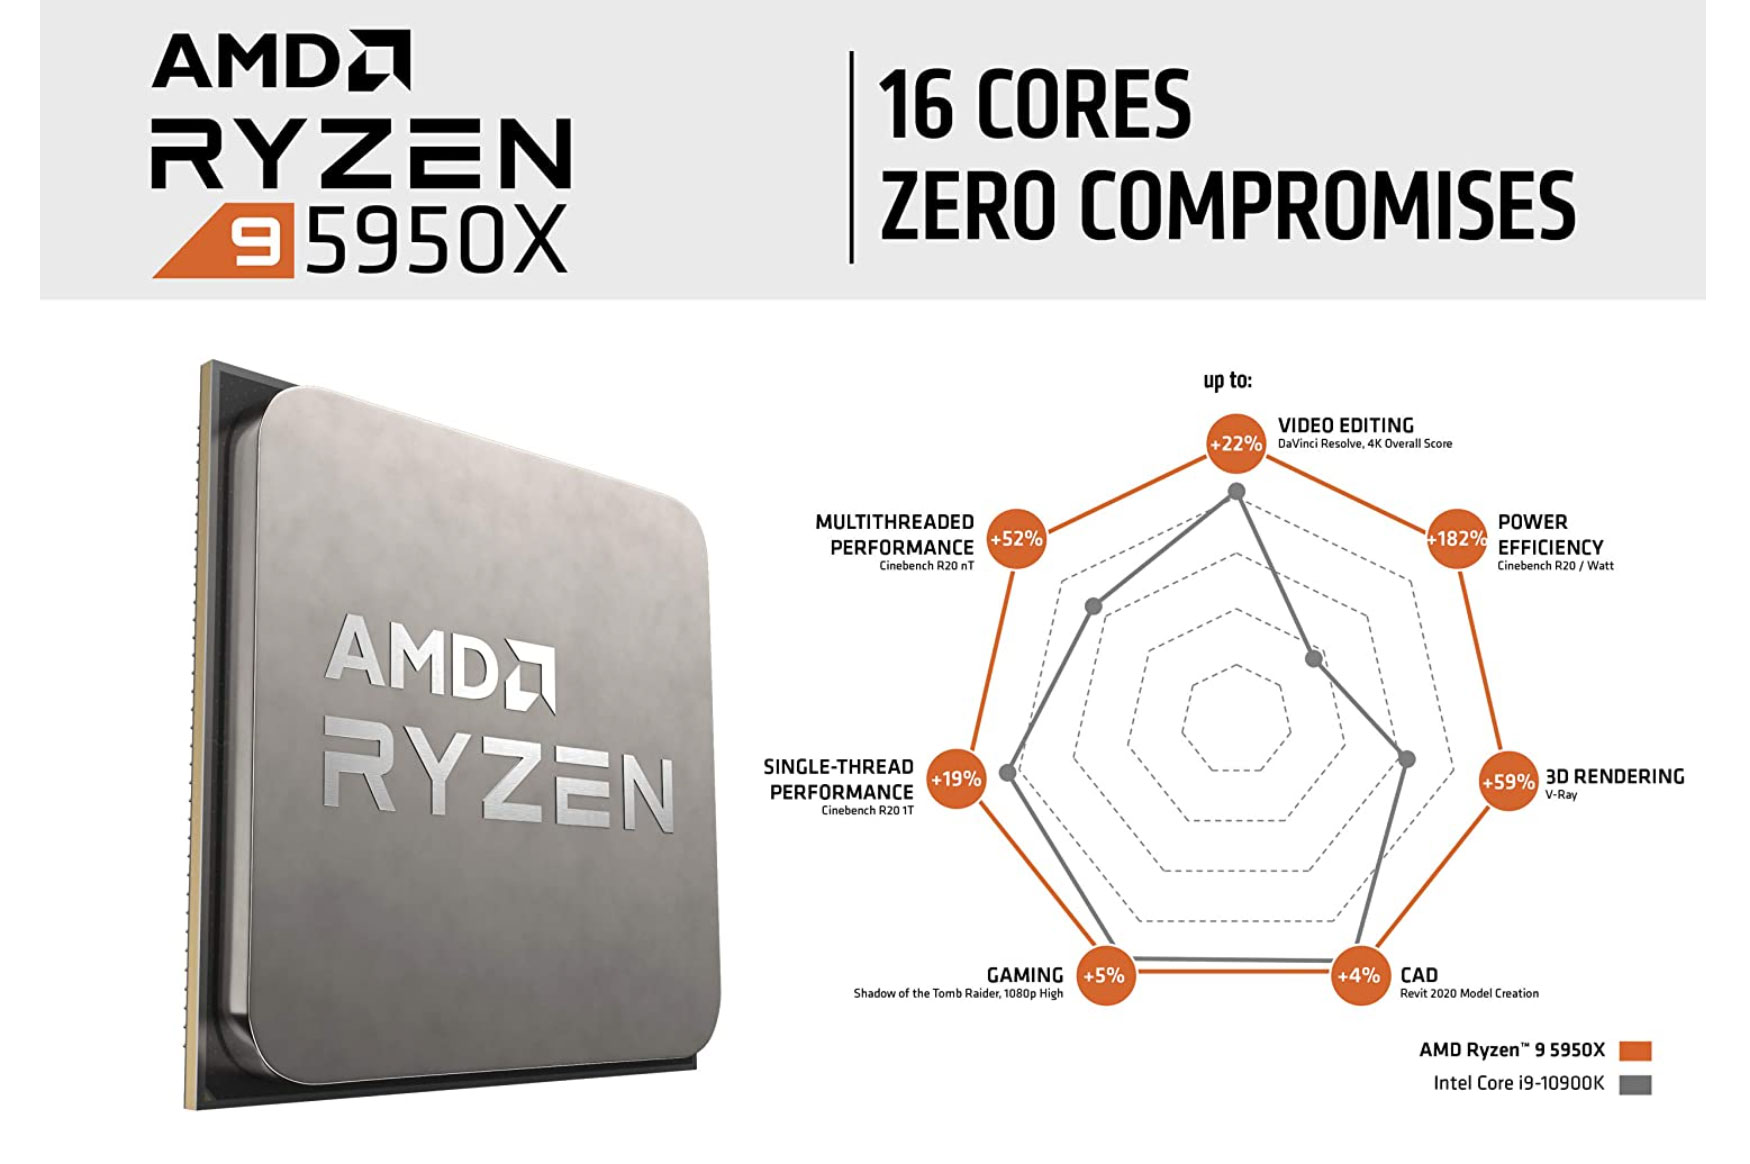 Ryzen 9 5950HX - the most powerful AMD laptops of this generation